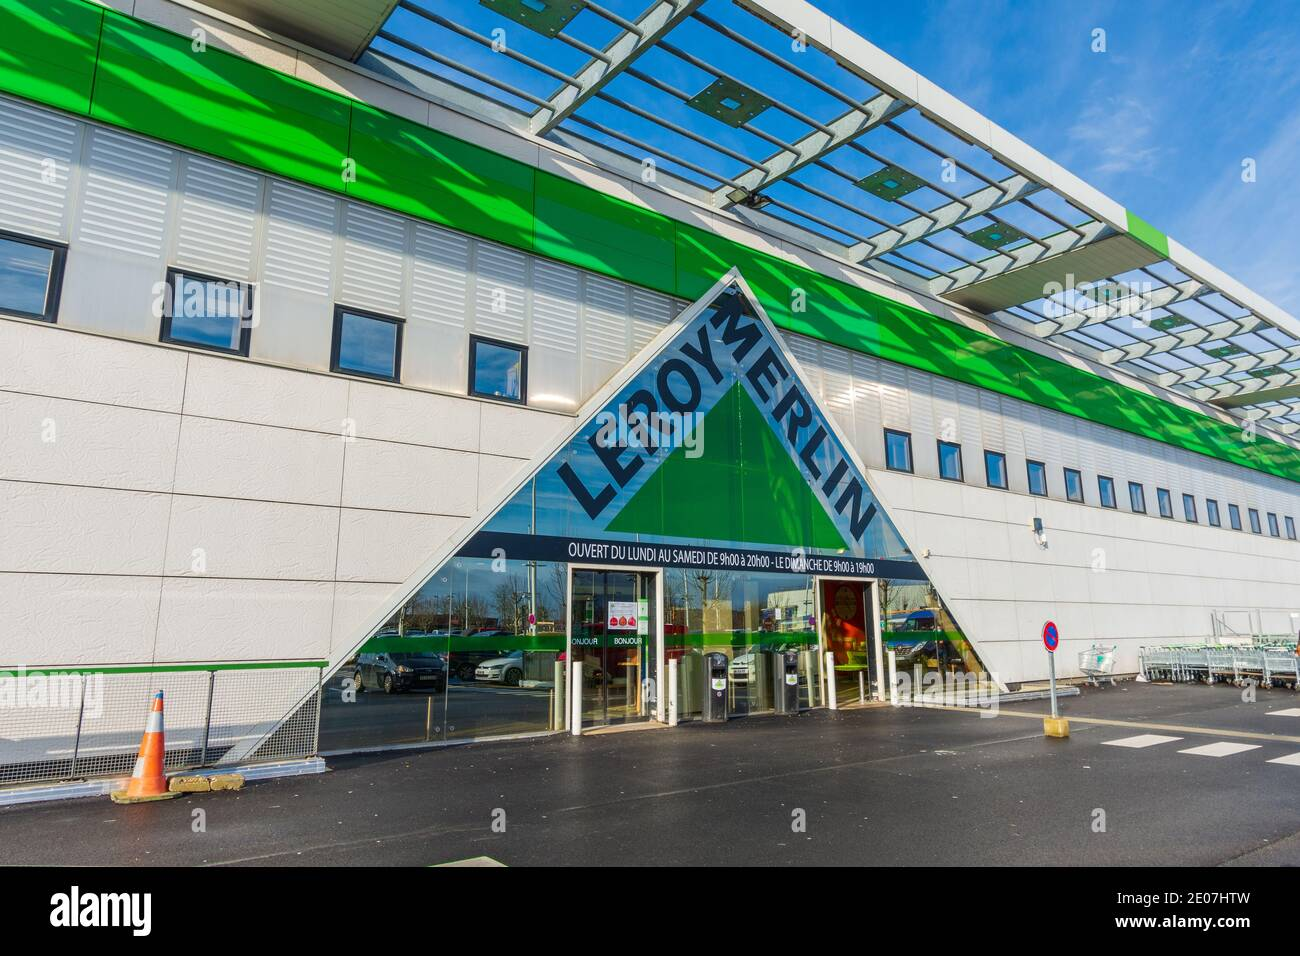 Bois D Arcy France December 30 2020 Main Entrance Of A Leroy Merlin Store An International French Retail Company Specializing In Diy Stock Photo Alamy